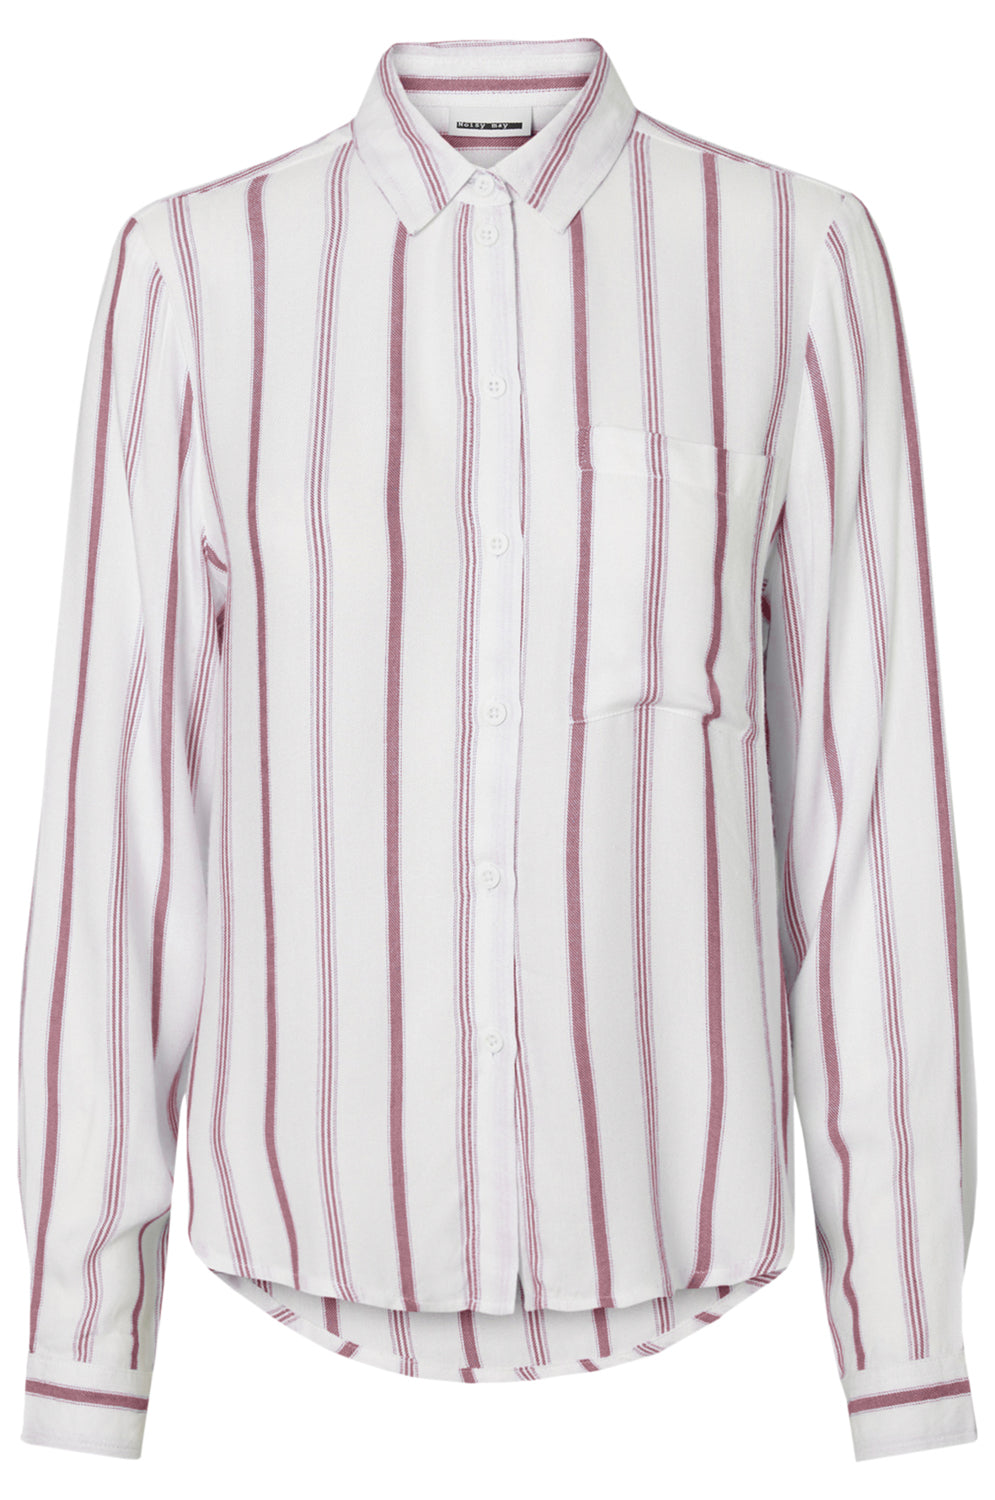 Abigail Striped Shirt - Coveted Style